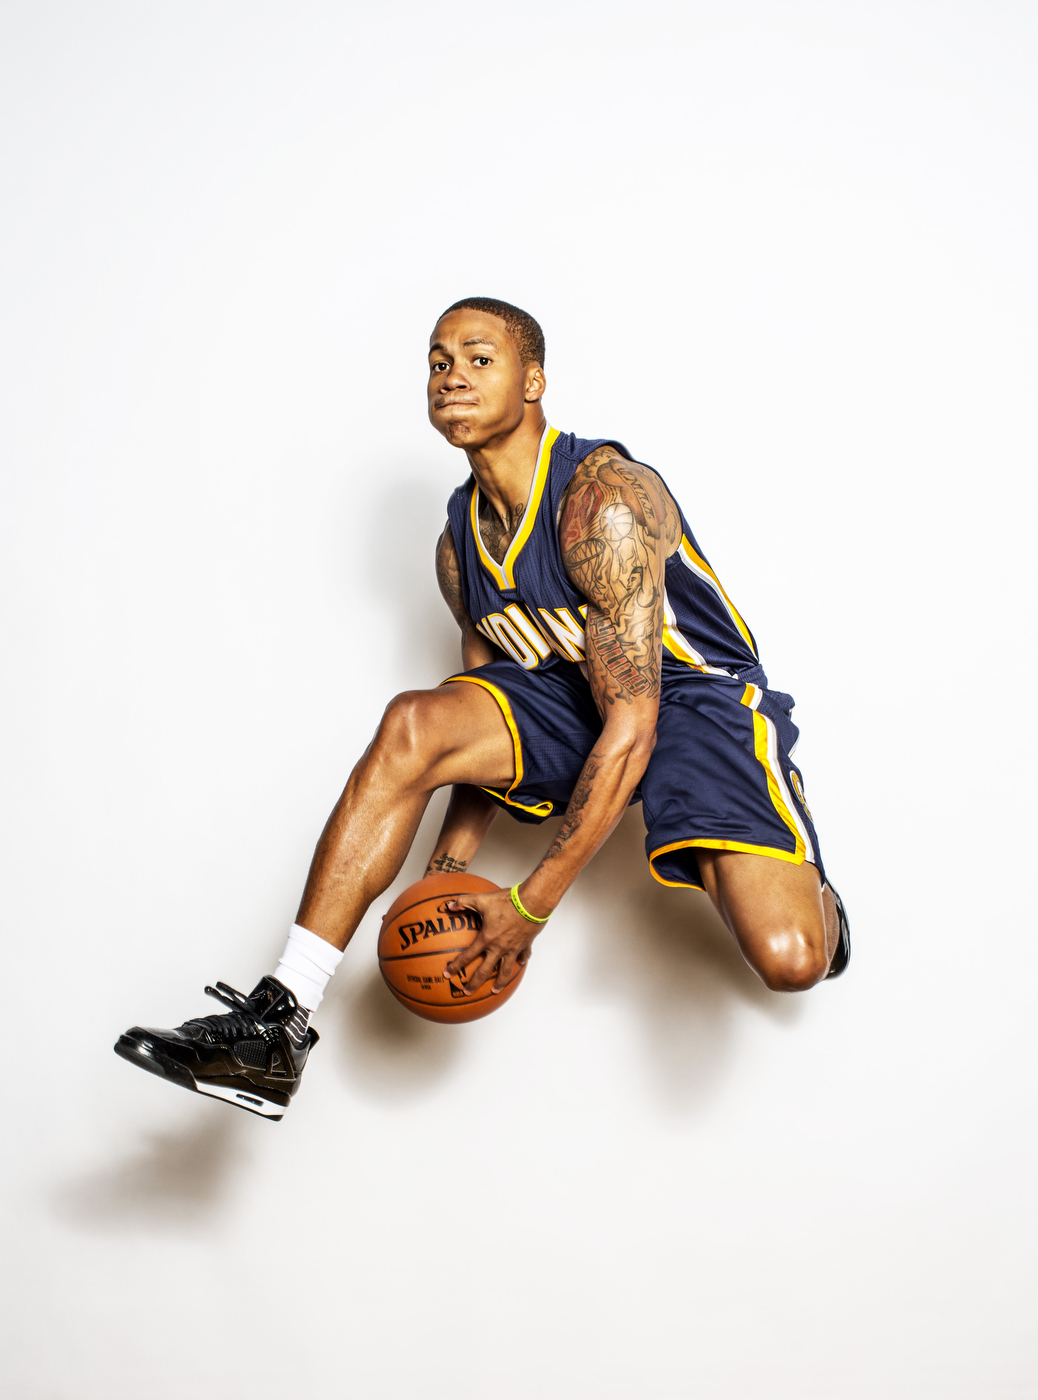 NBA_ROOKIE_SHOOT_080815_LAHAM50317